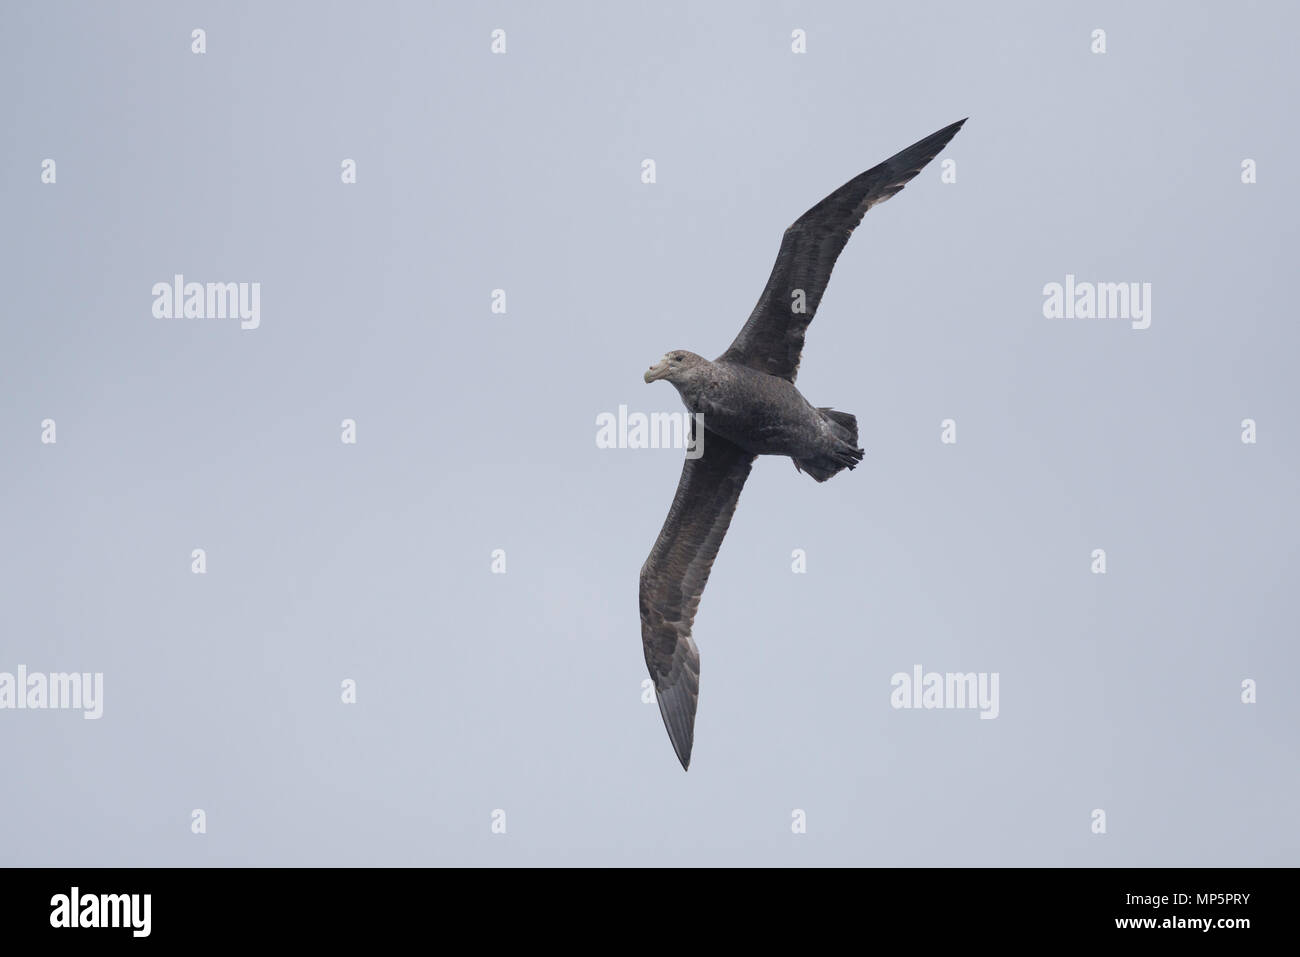 Immature Southern Giant Petrel soaring above the waters of the Straits of Magellan, in Southern Chile - Stock Image